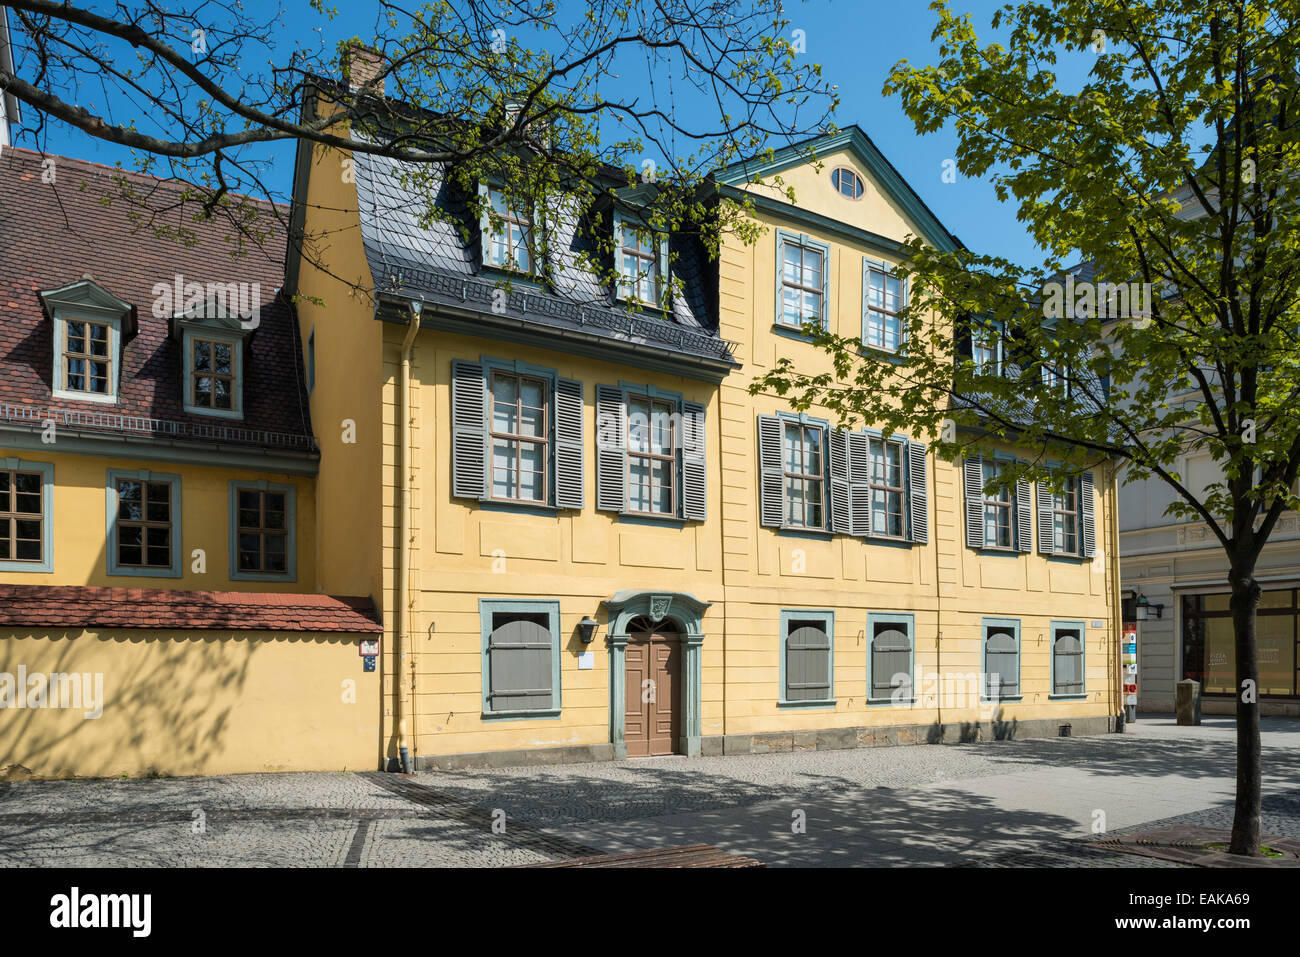 House of Friedrich Schiller, Weimar, Thuringia, Germany - Stock Image